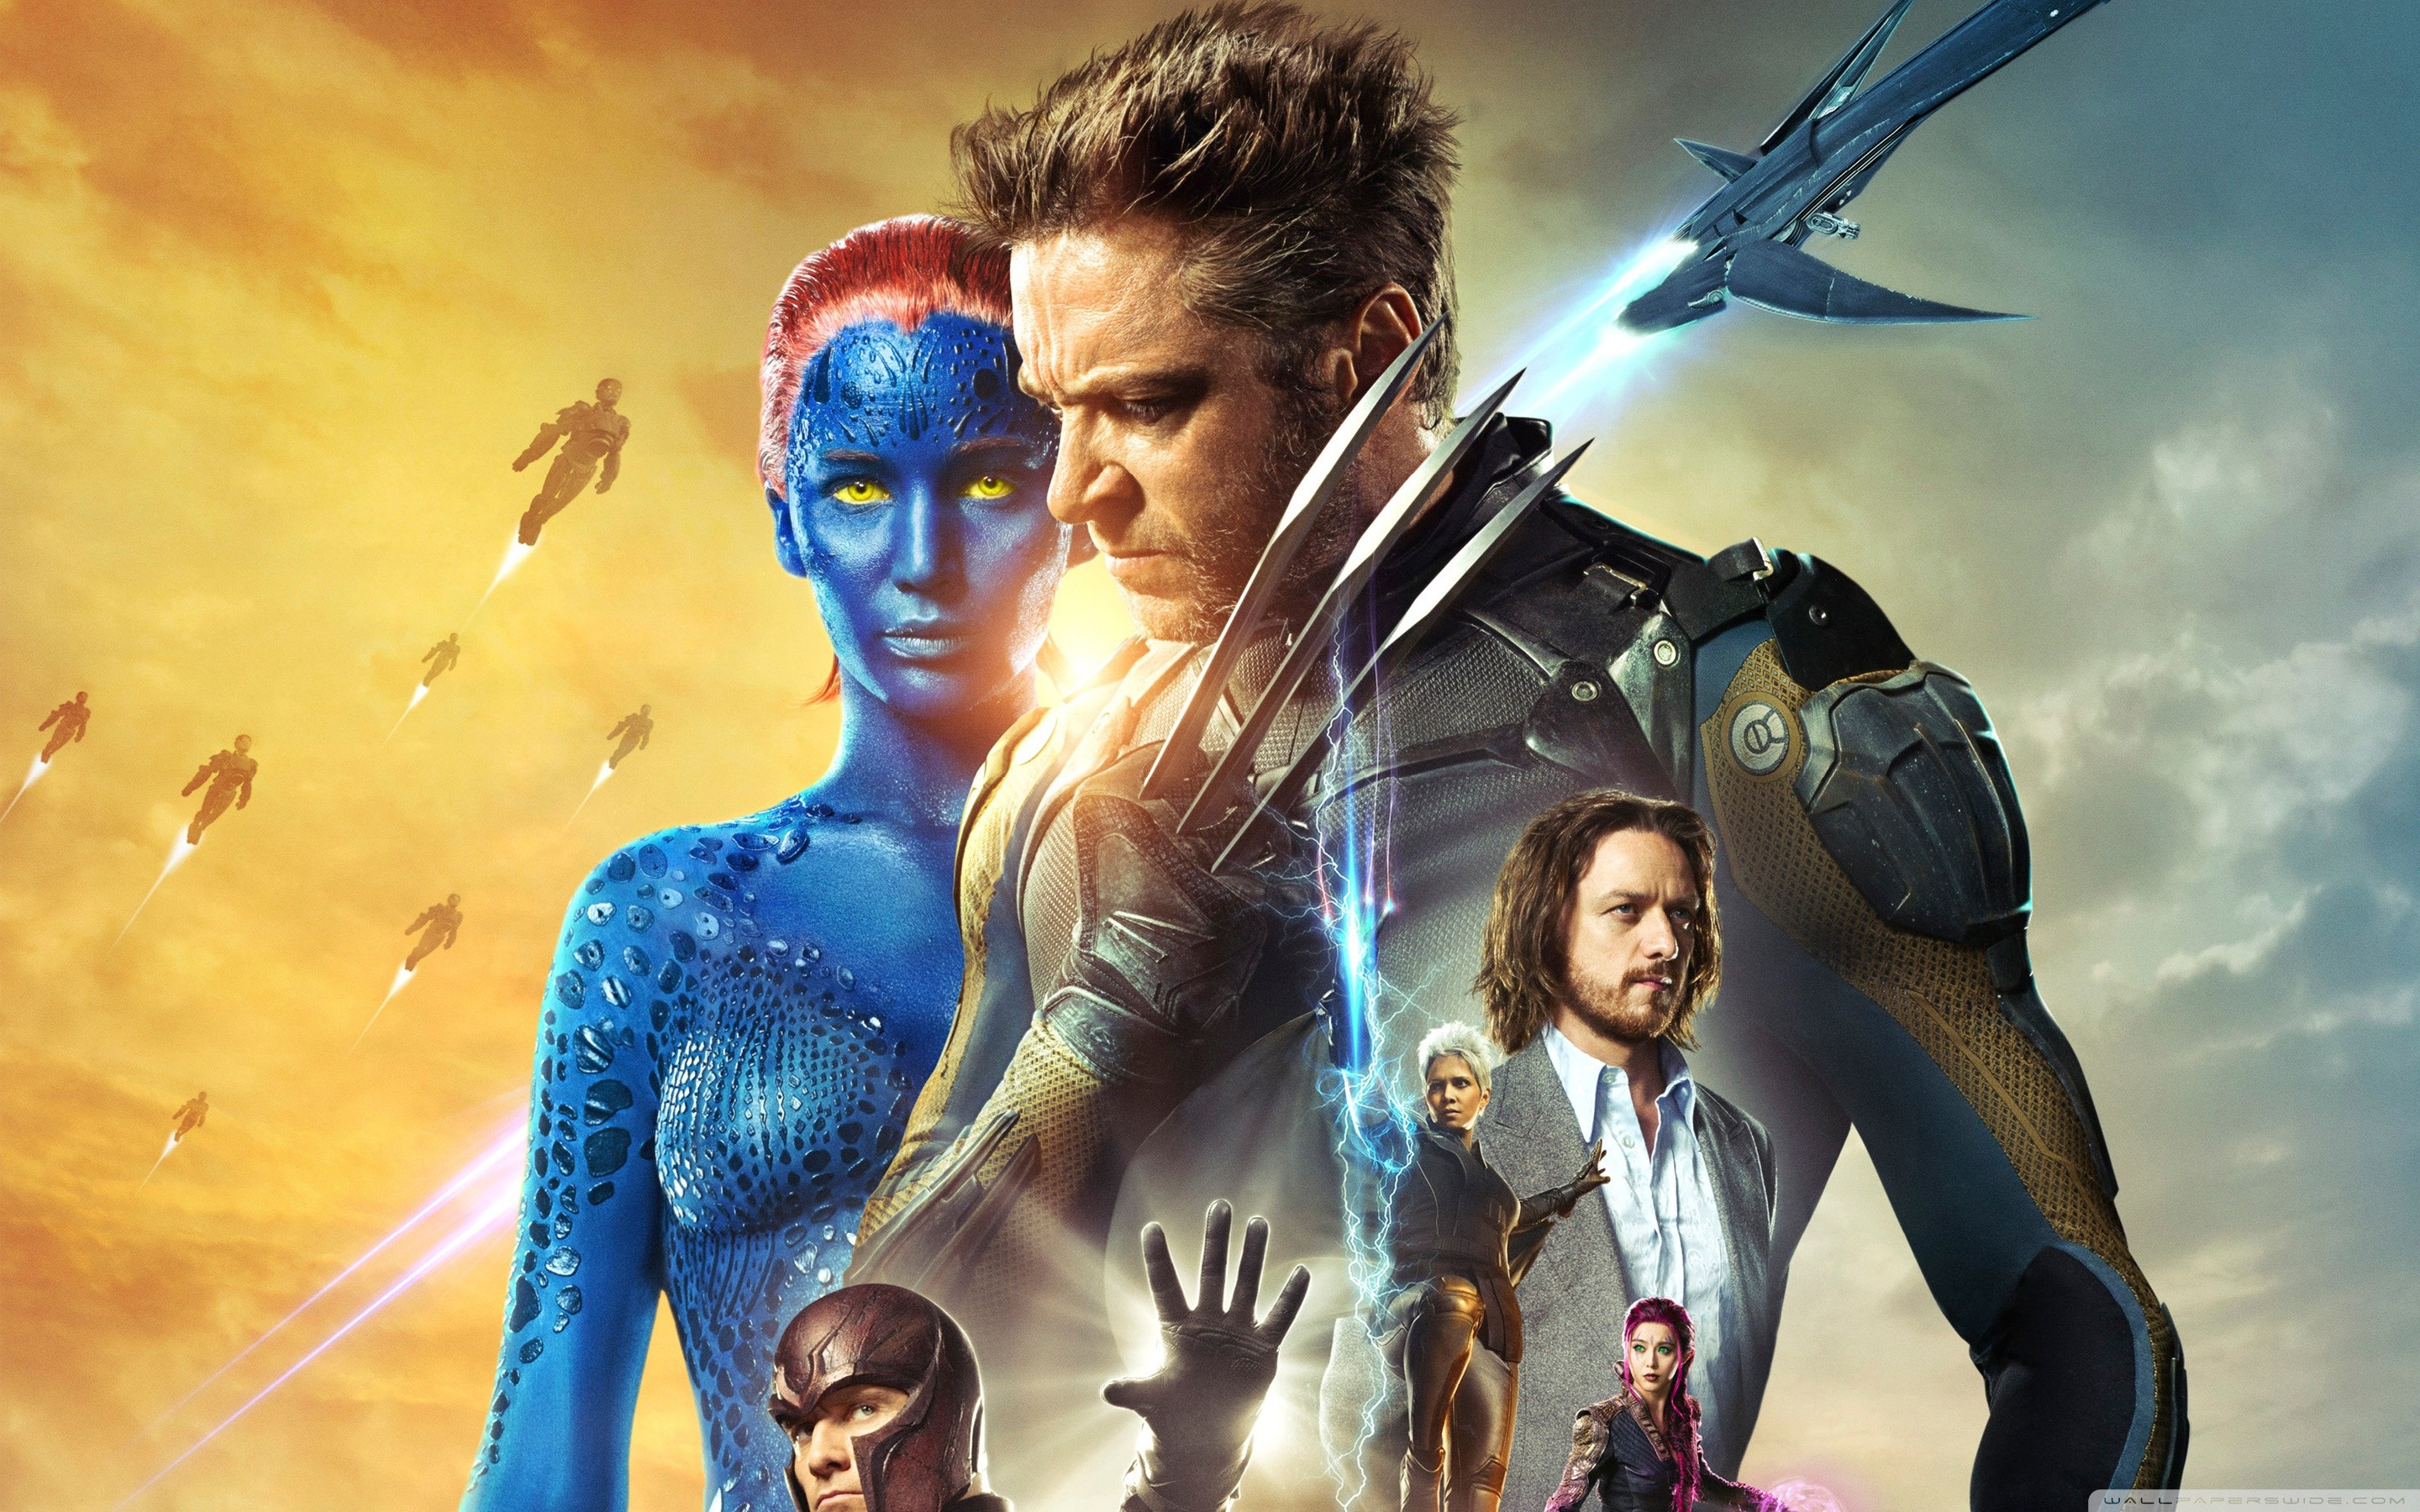 2880x1800 X-Men Days of Future Past 2014 HD Wide Wallpaper for Widescreen